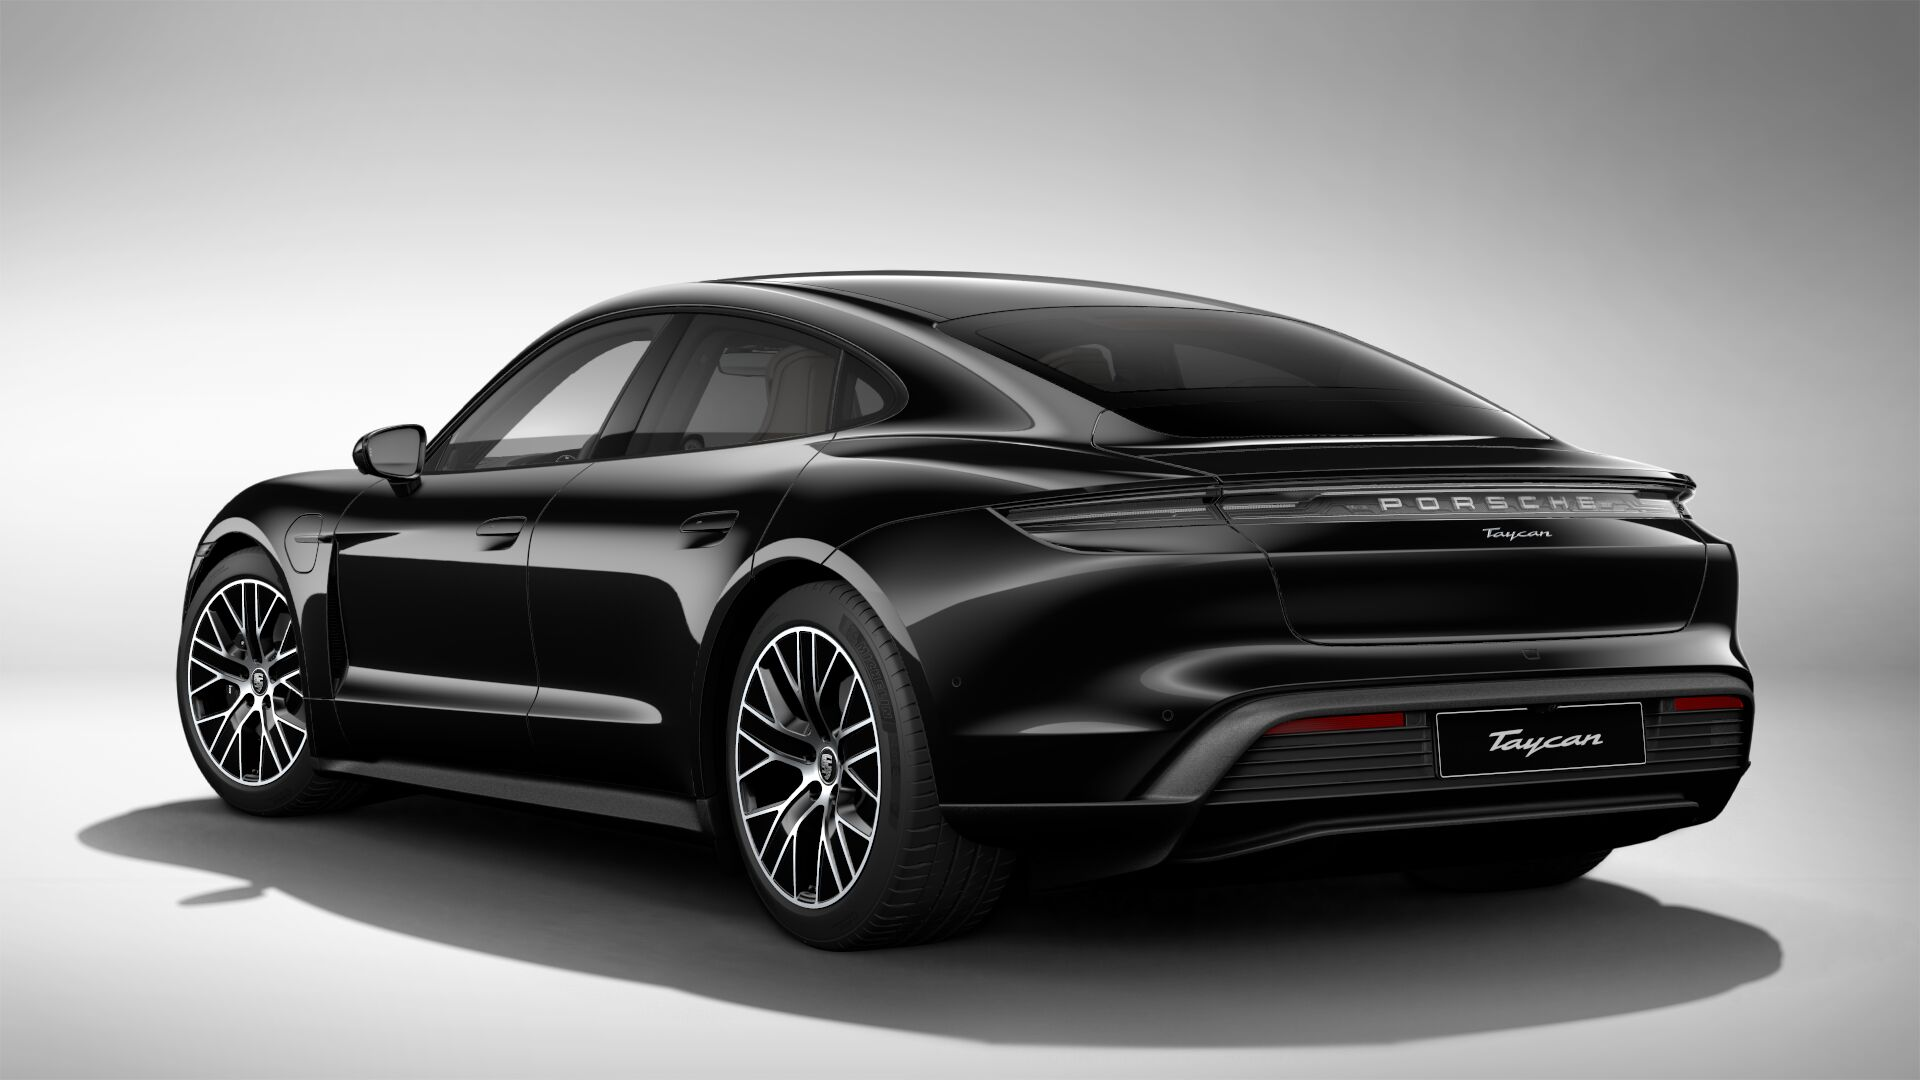 2021 Porsche Taycan Performance Plus RWD